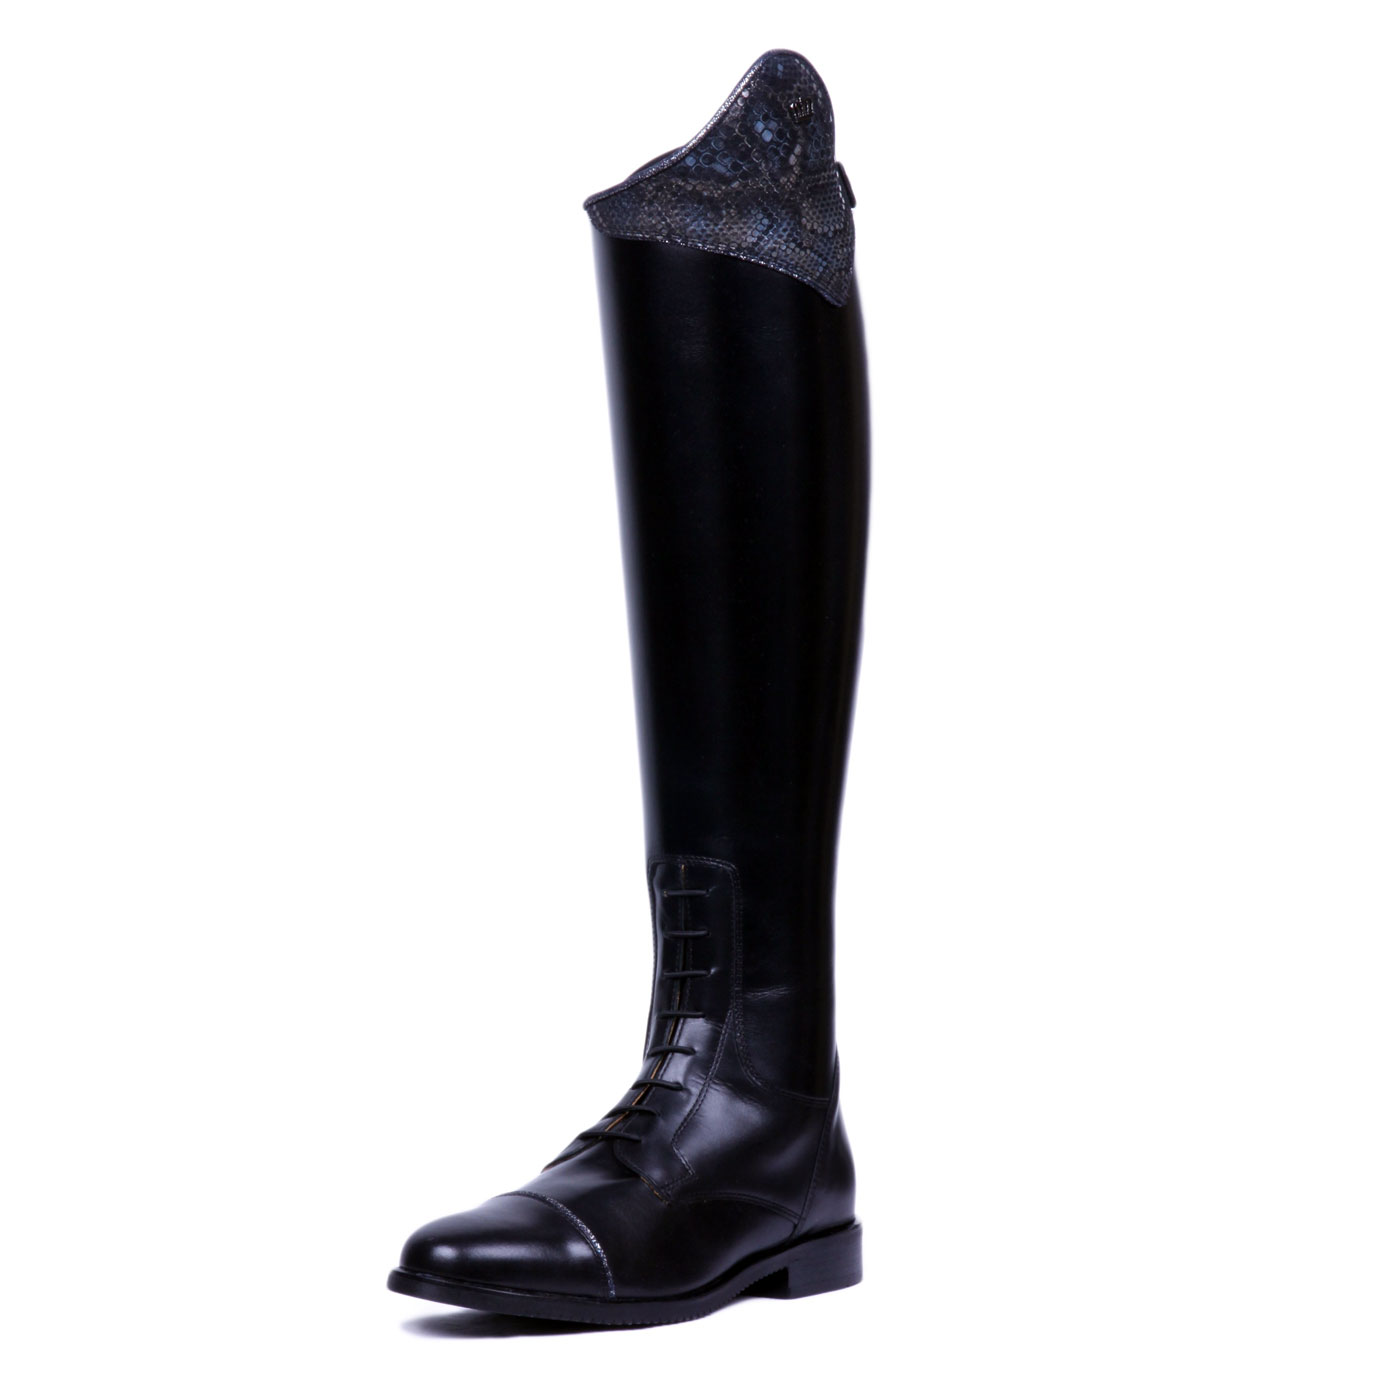 Kingsley Aspen Special Romance Ladies Riding Boots